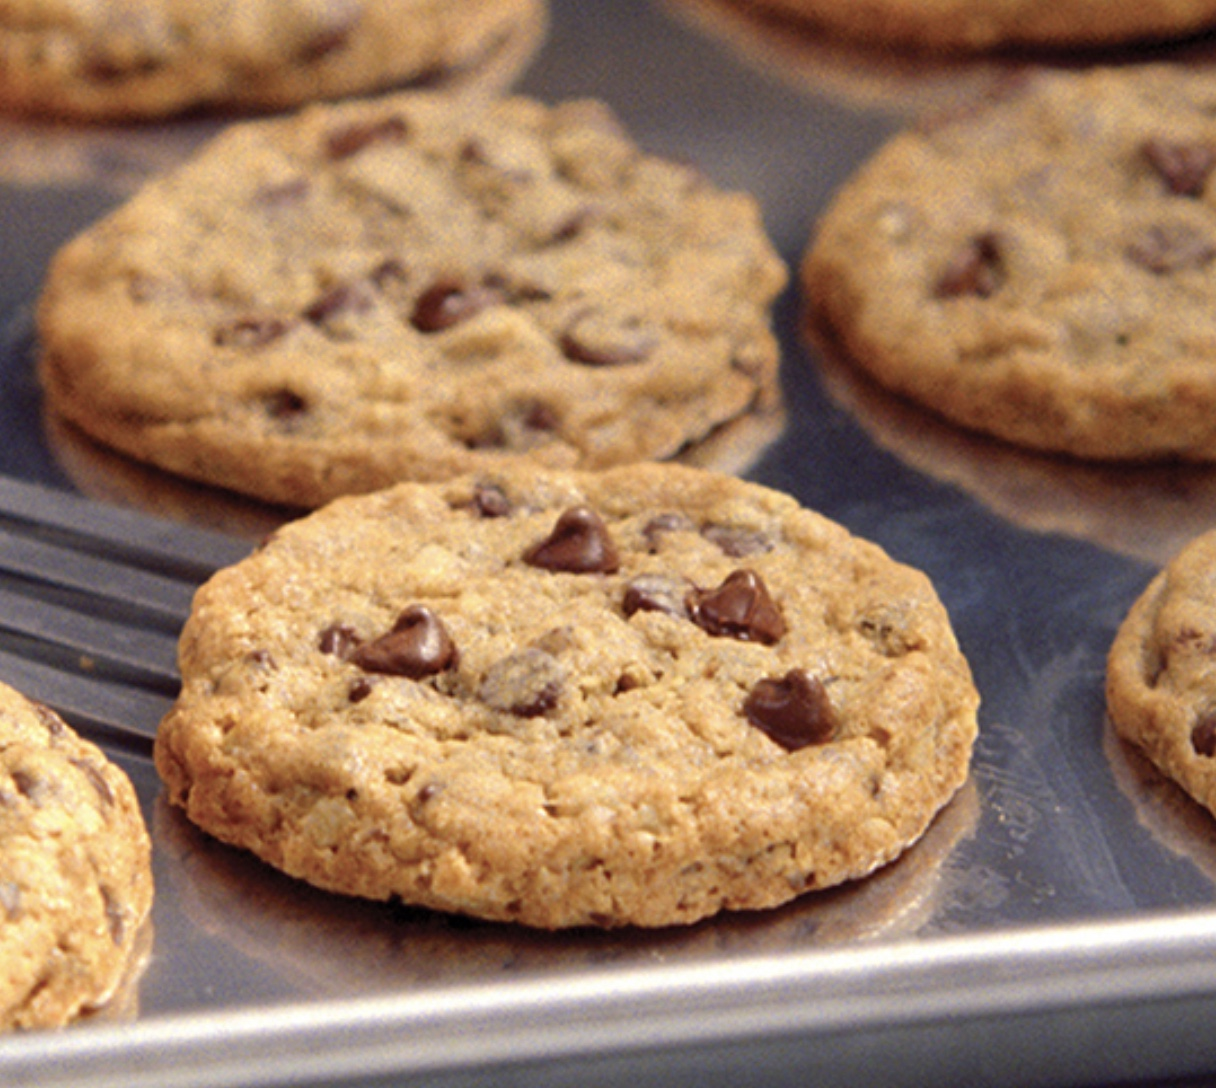 doubletree chocolate chip cookies on a pan